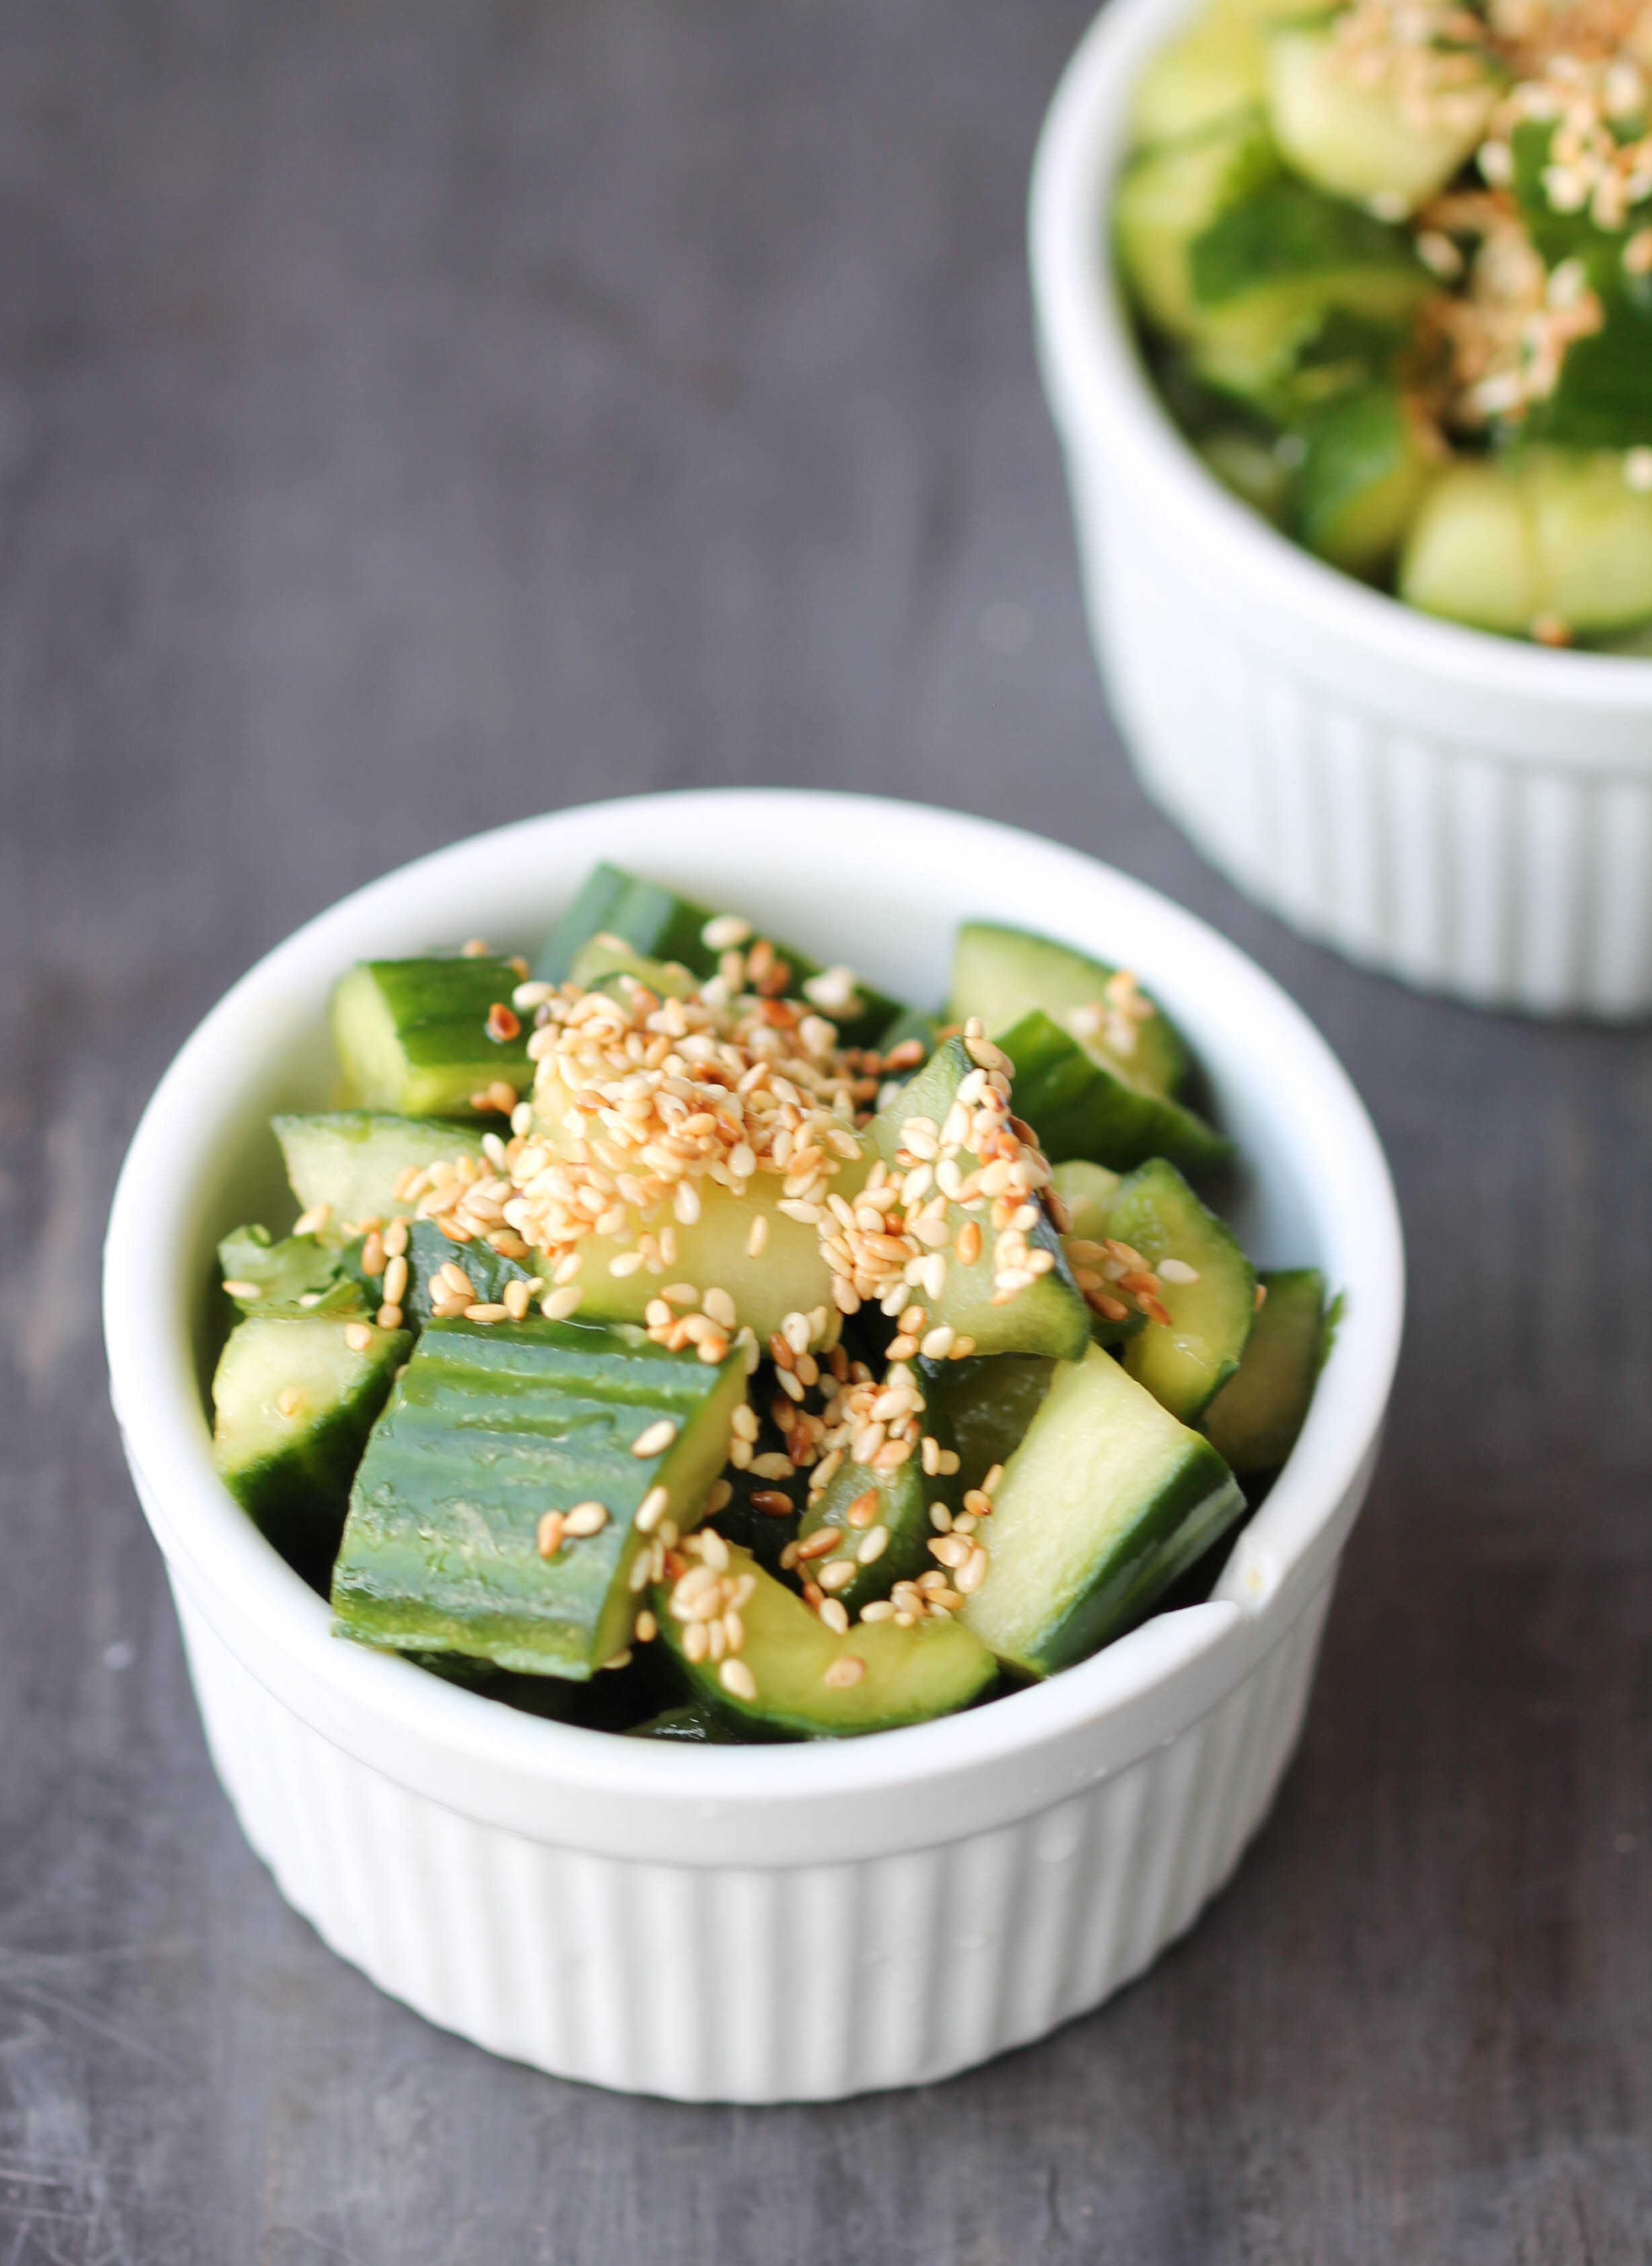 Smashed Cucumber Salad is an easy, refreshing, and flavorful salad influenced by Chinese flavors. It comes together in 5 minutes or less, feeds the crowd, also is naturally vegan, gluten-free friendly!